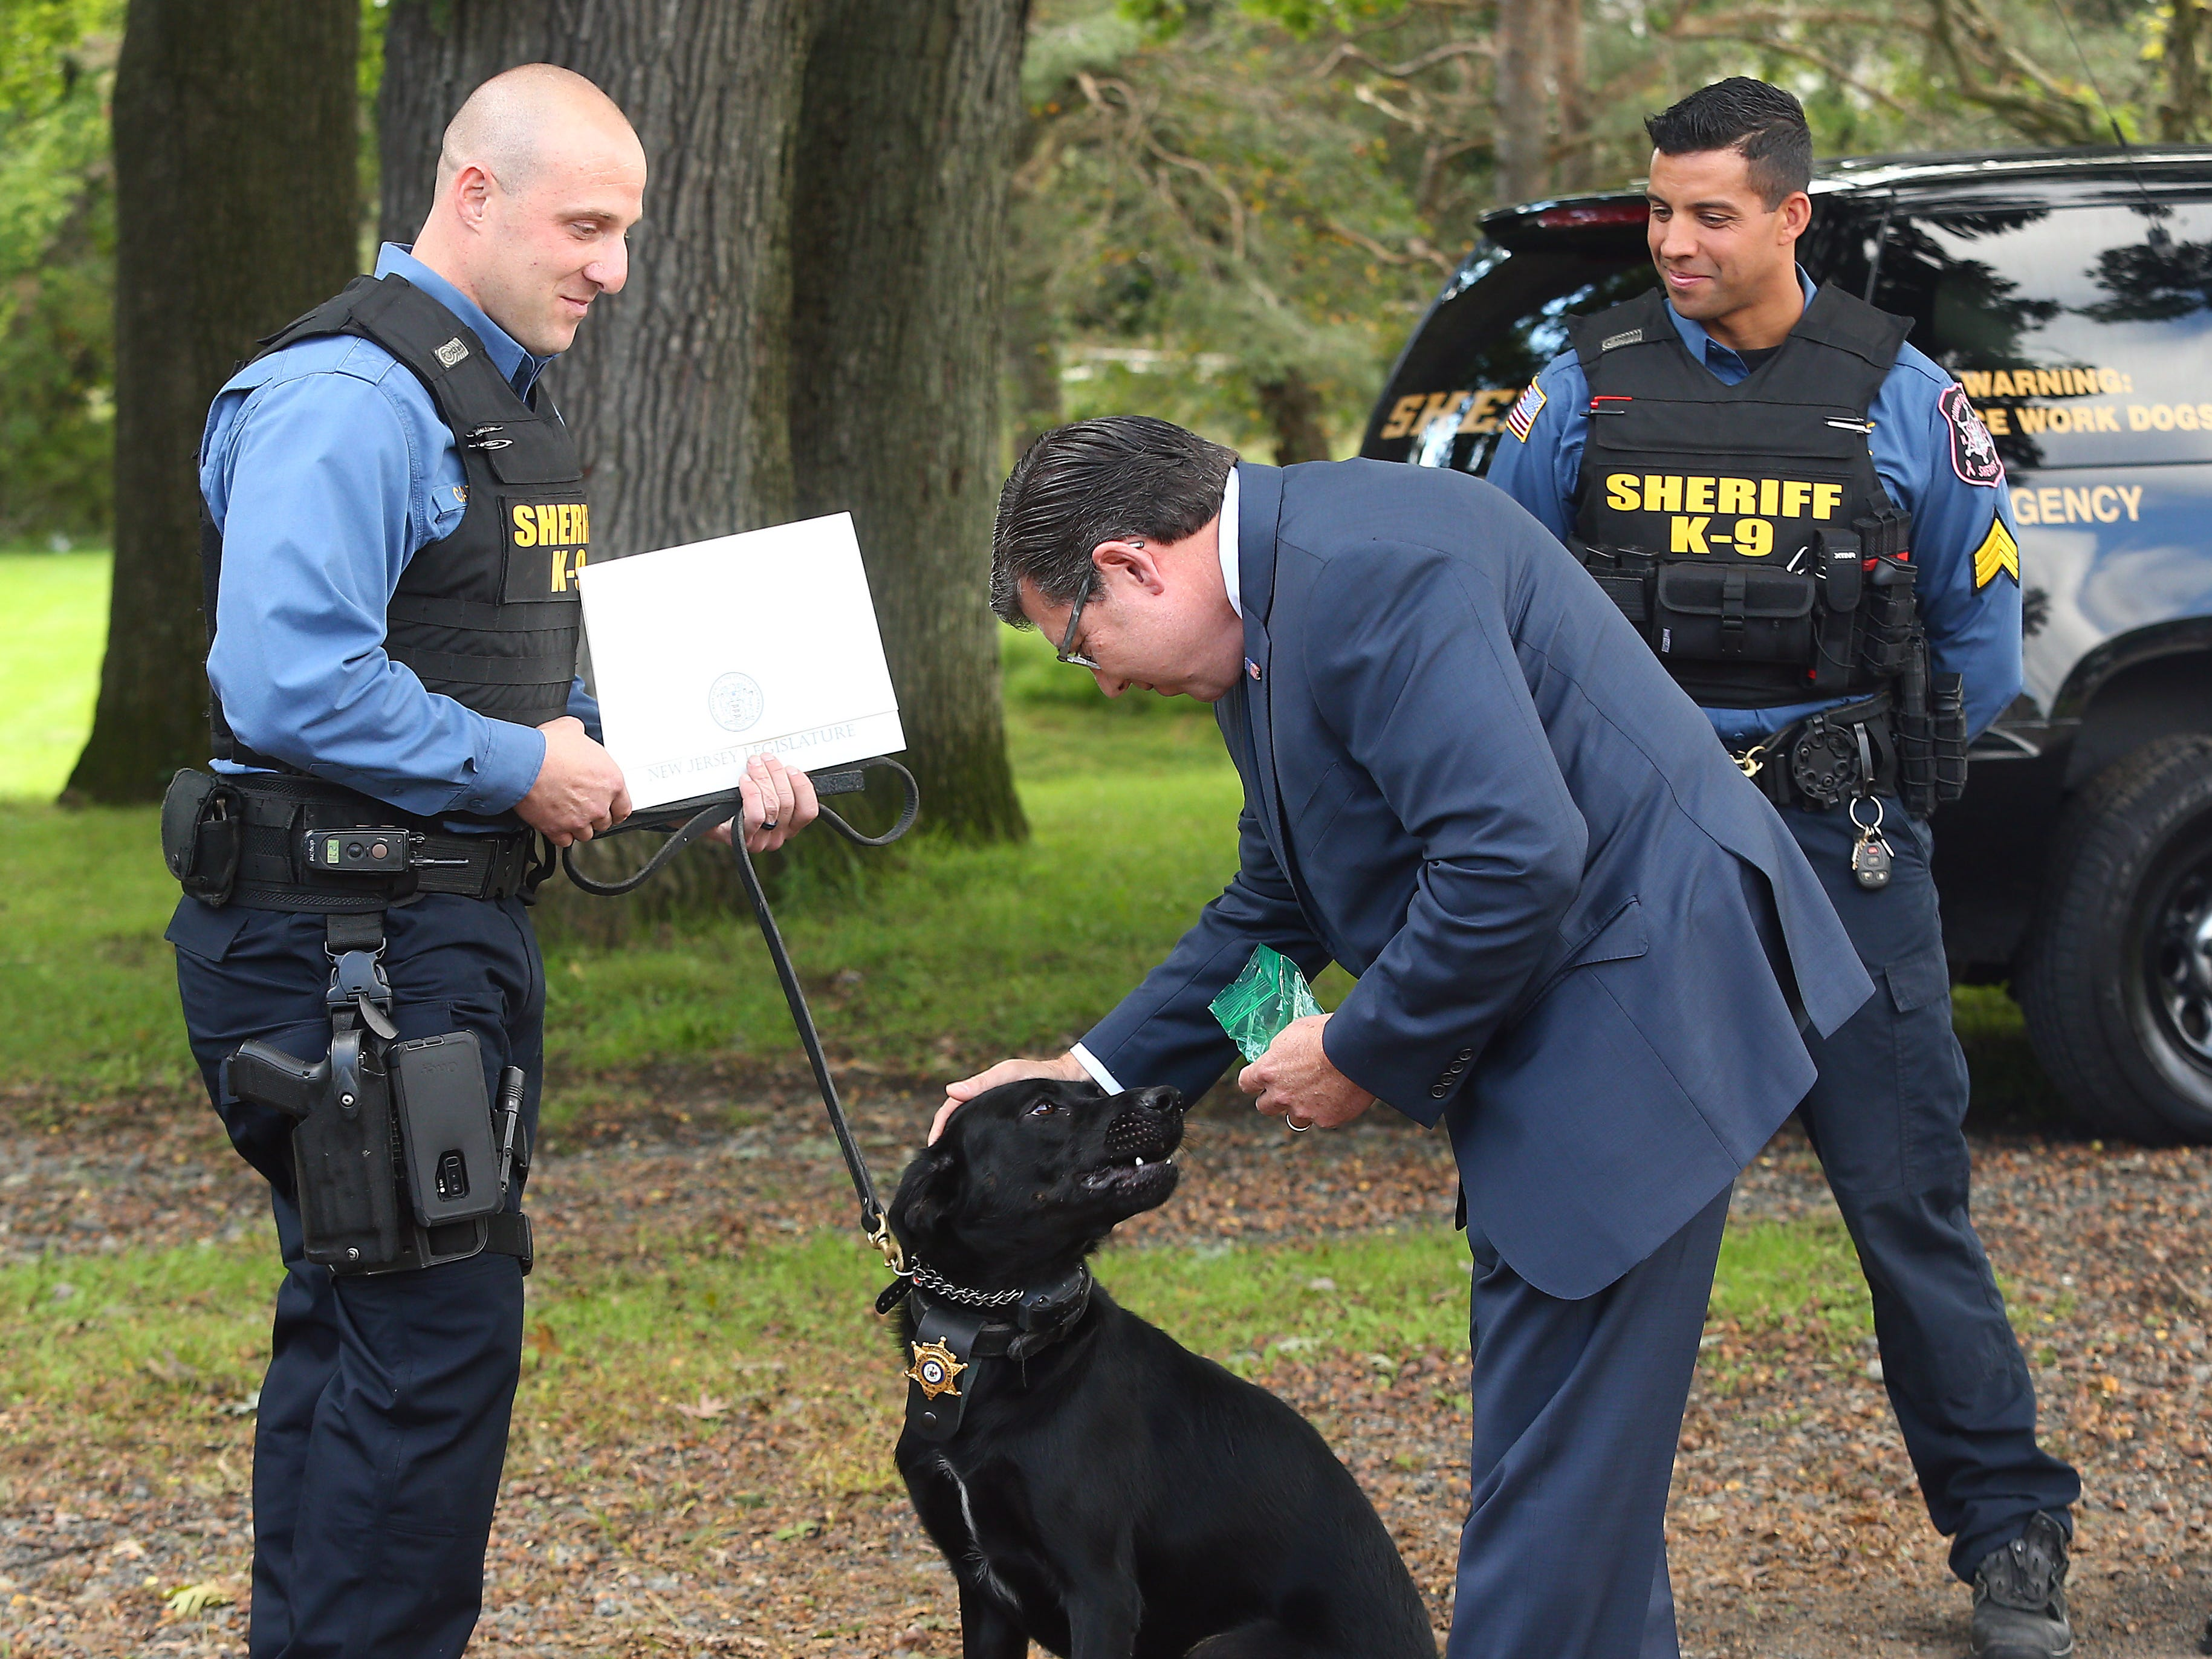 Assemblyman Anthony Bucco says hello to K-9 Boomer at the Morris County sheriff's office K-9 kennels in Parsippany. Boomer was found at a shelter, rescued and then trained as the sheriff's office's newest bomb sniffing dog. October 3, 2018, Parsippany, NJ